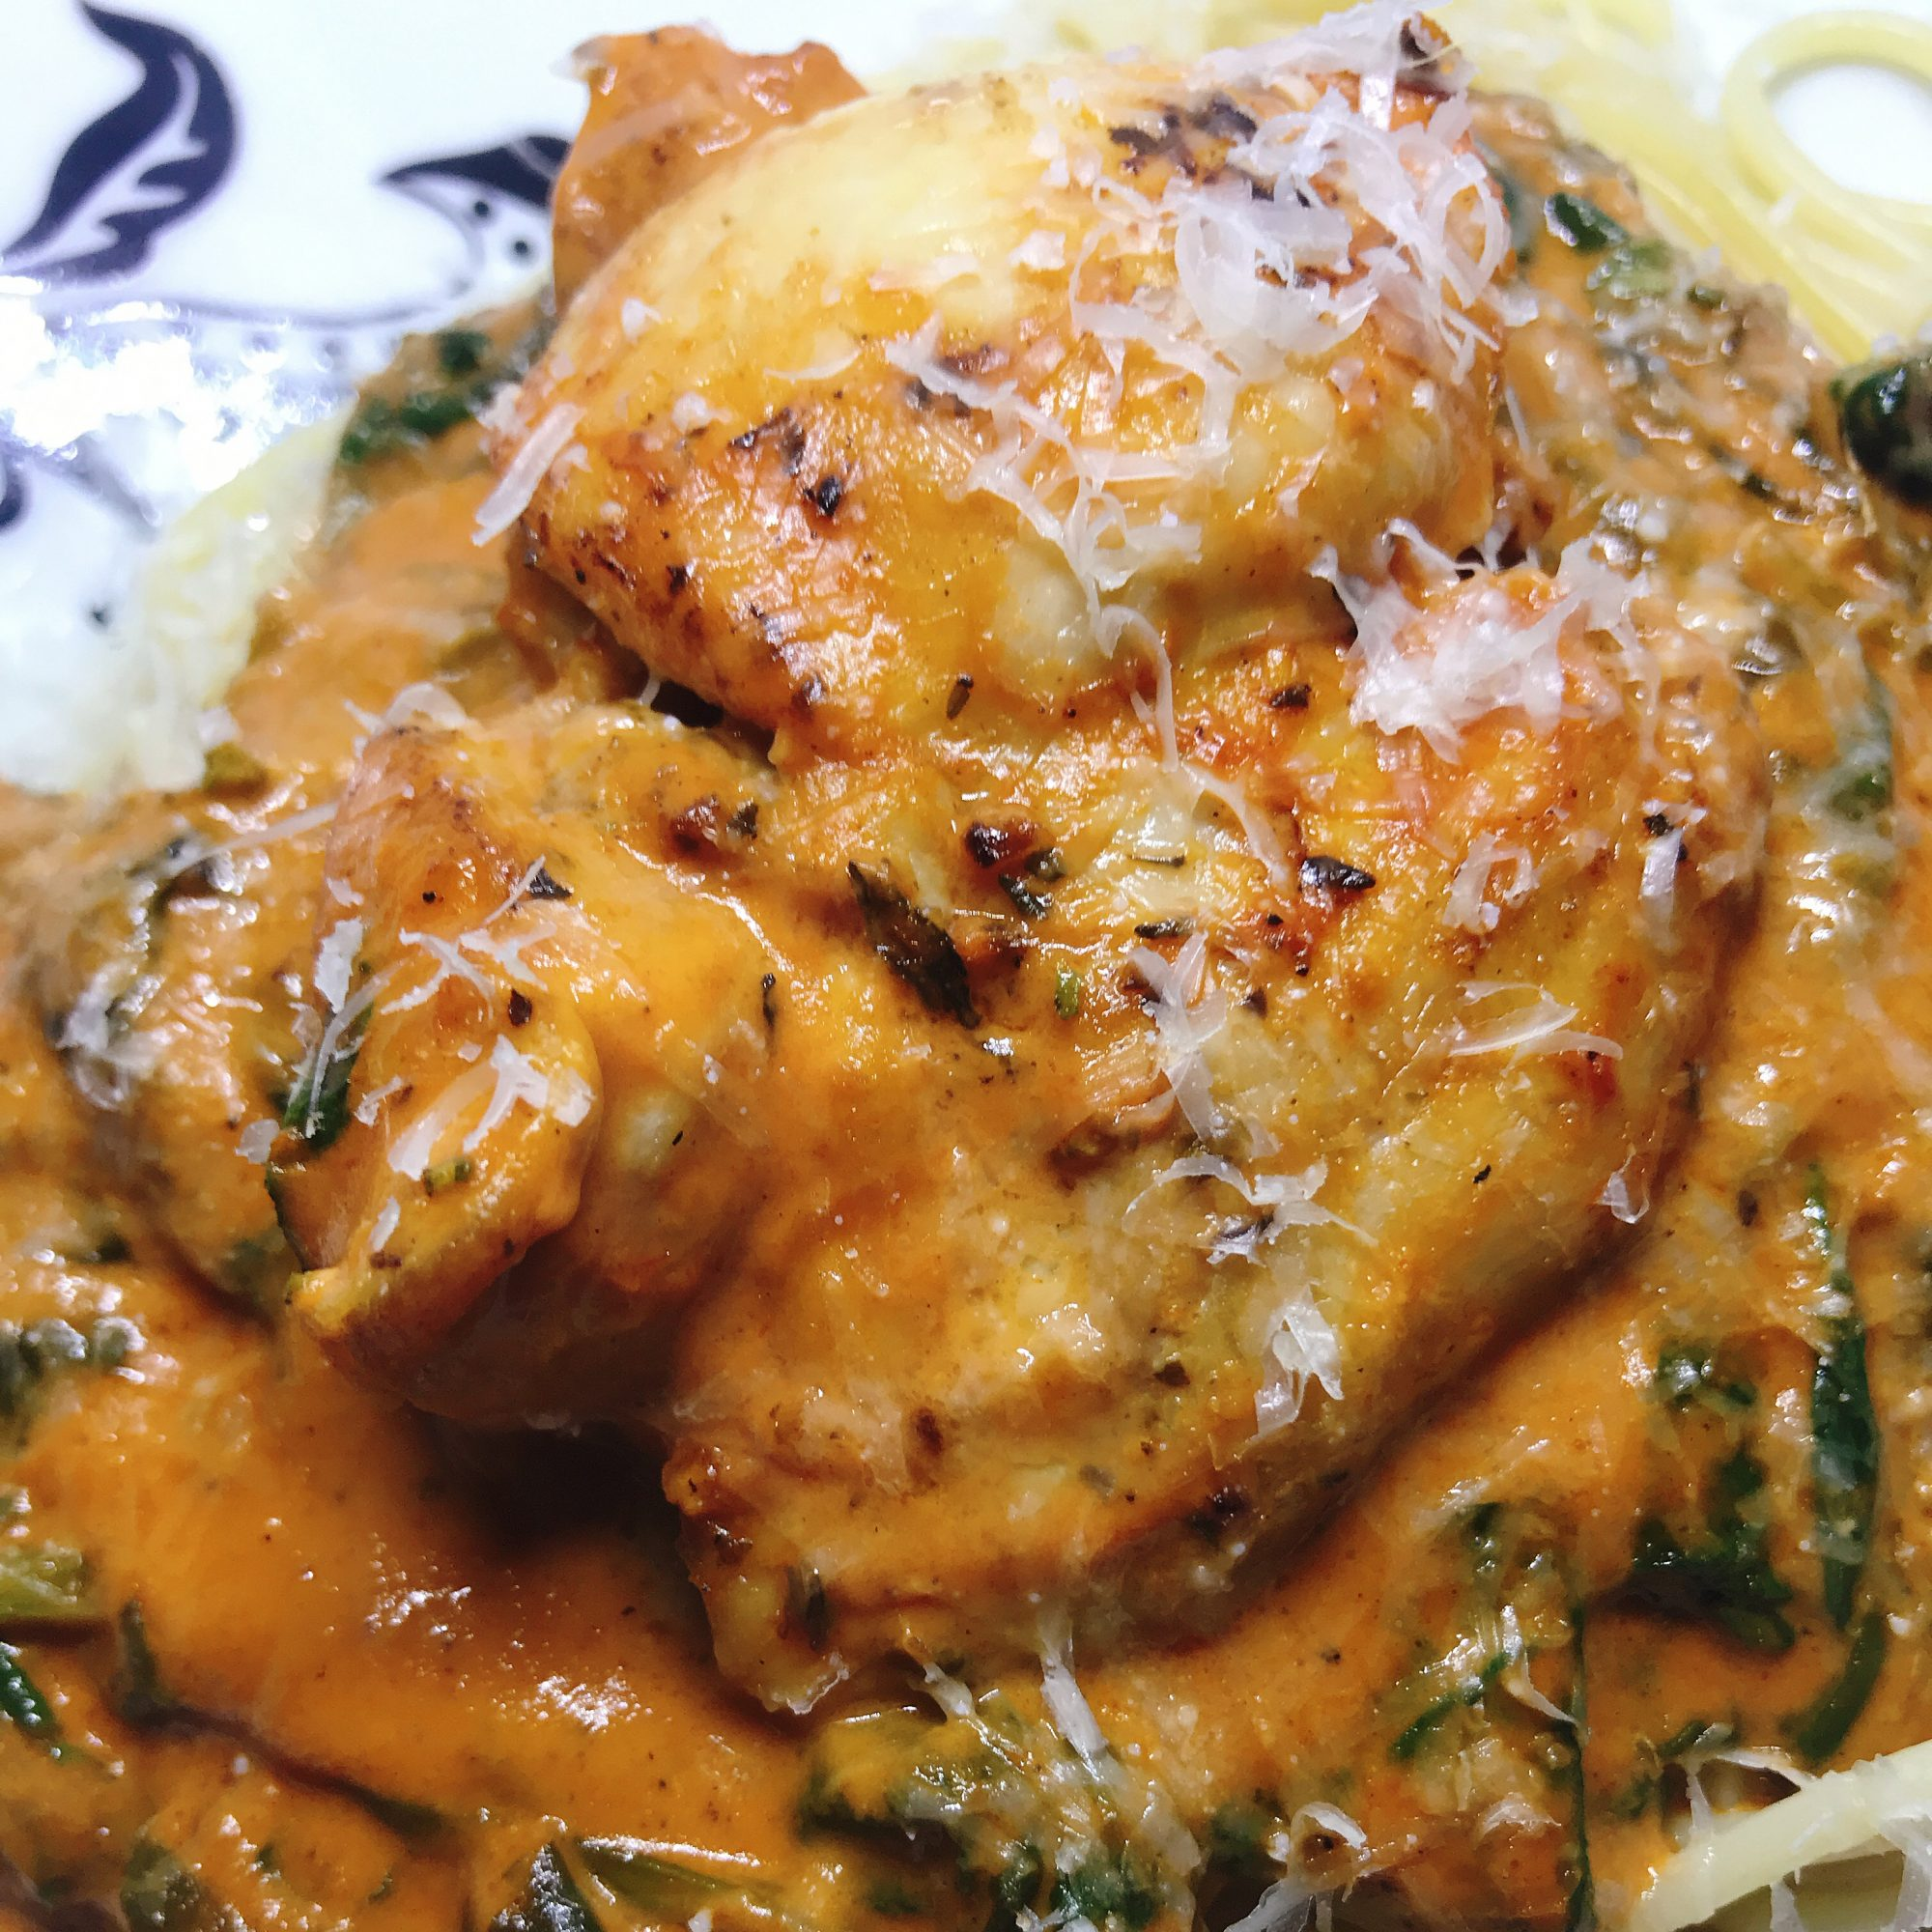 Italian Pan-Fried Chicken Thighs with Creamy Tomato Sauce over pasta